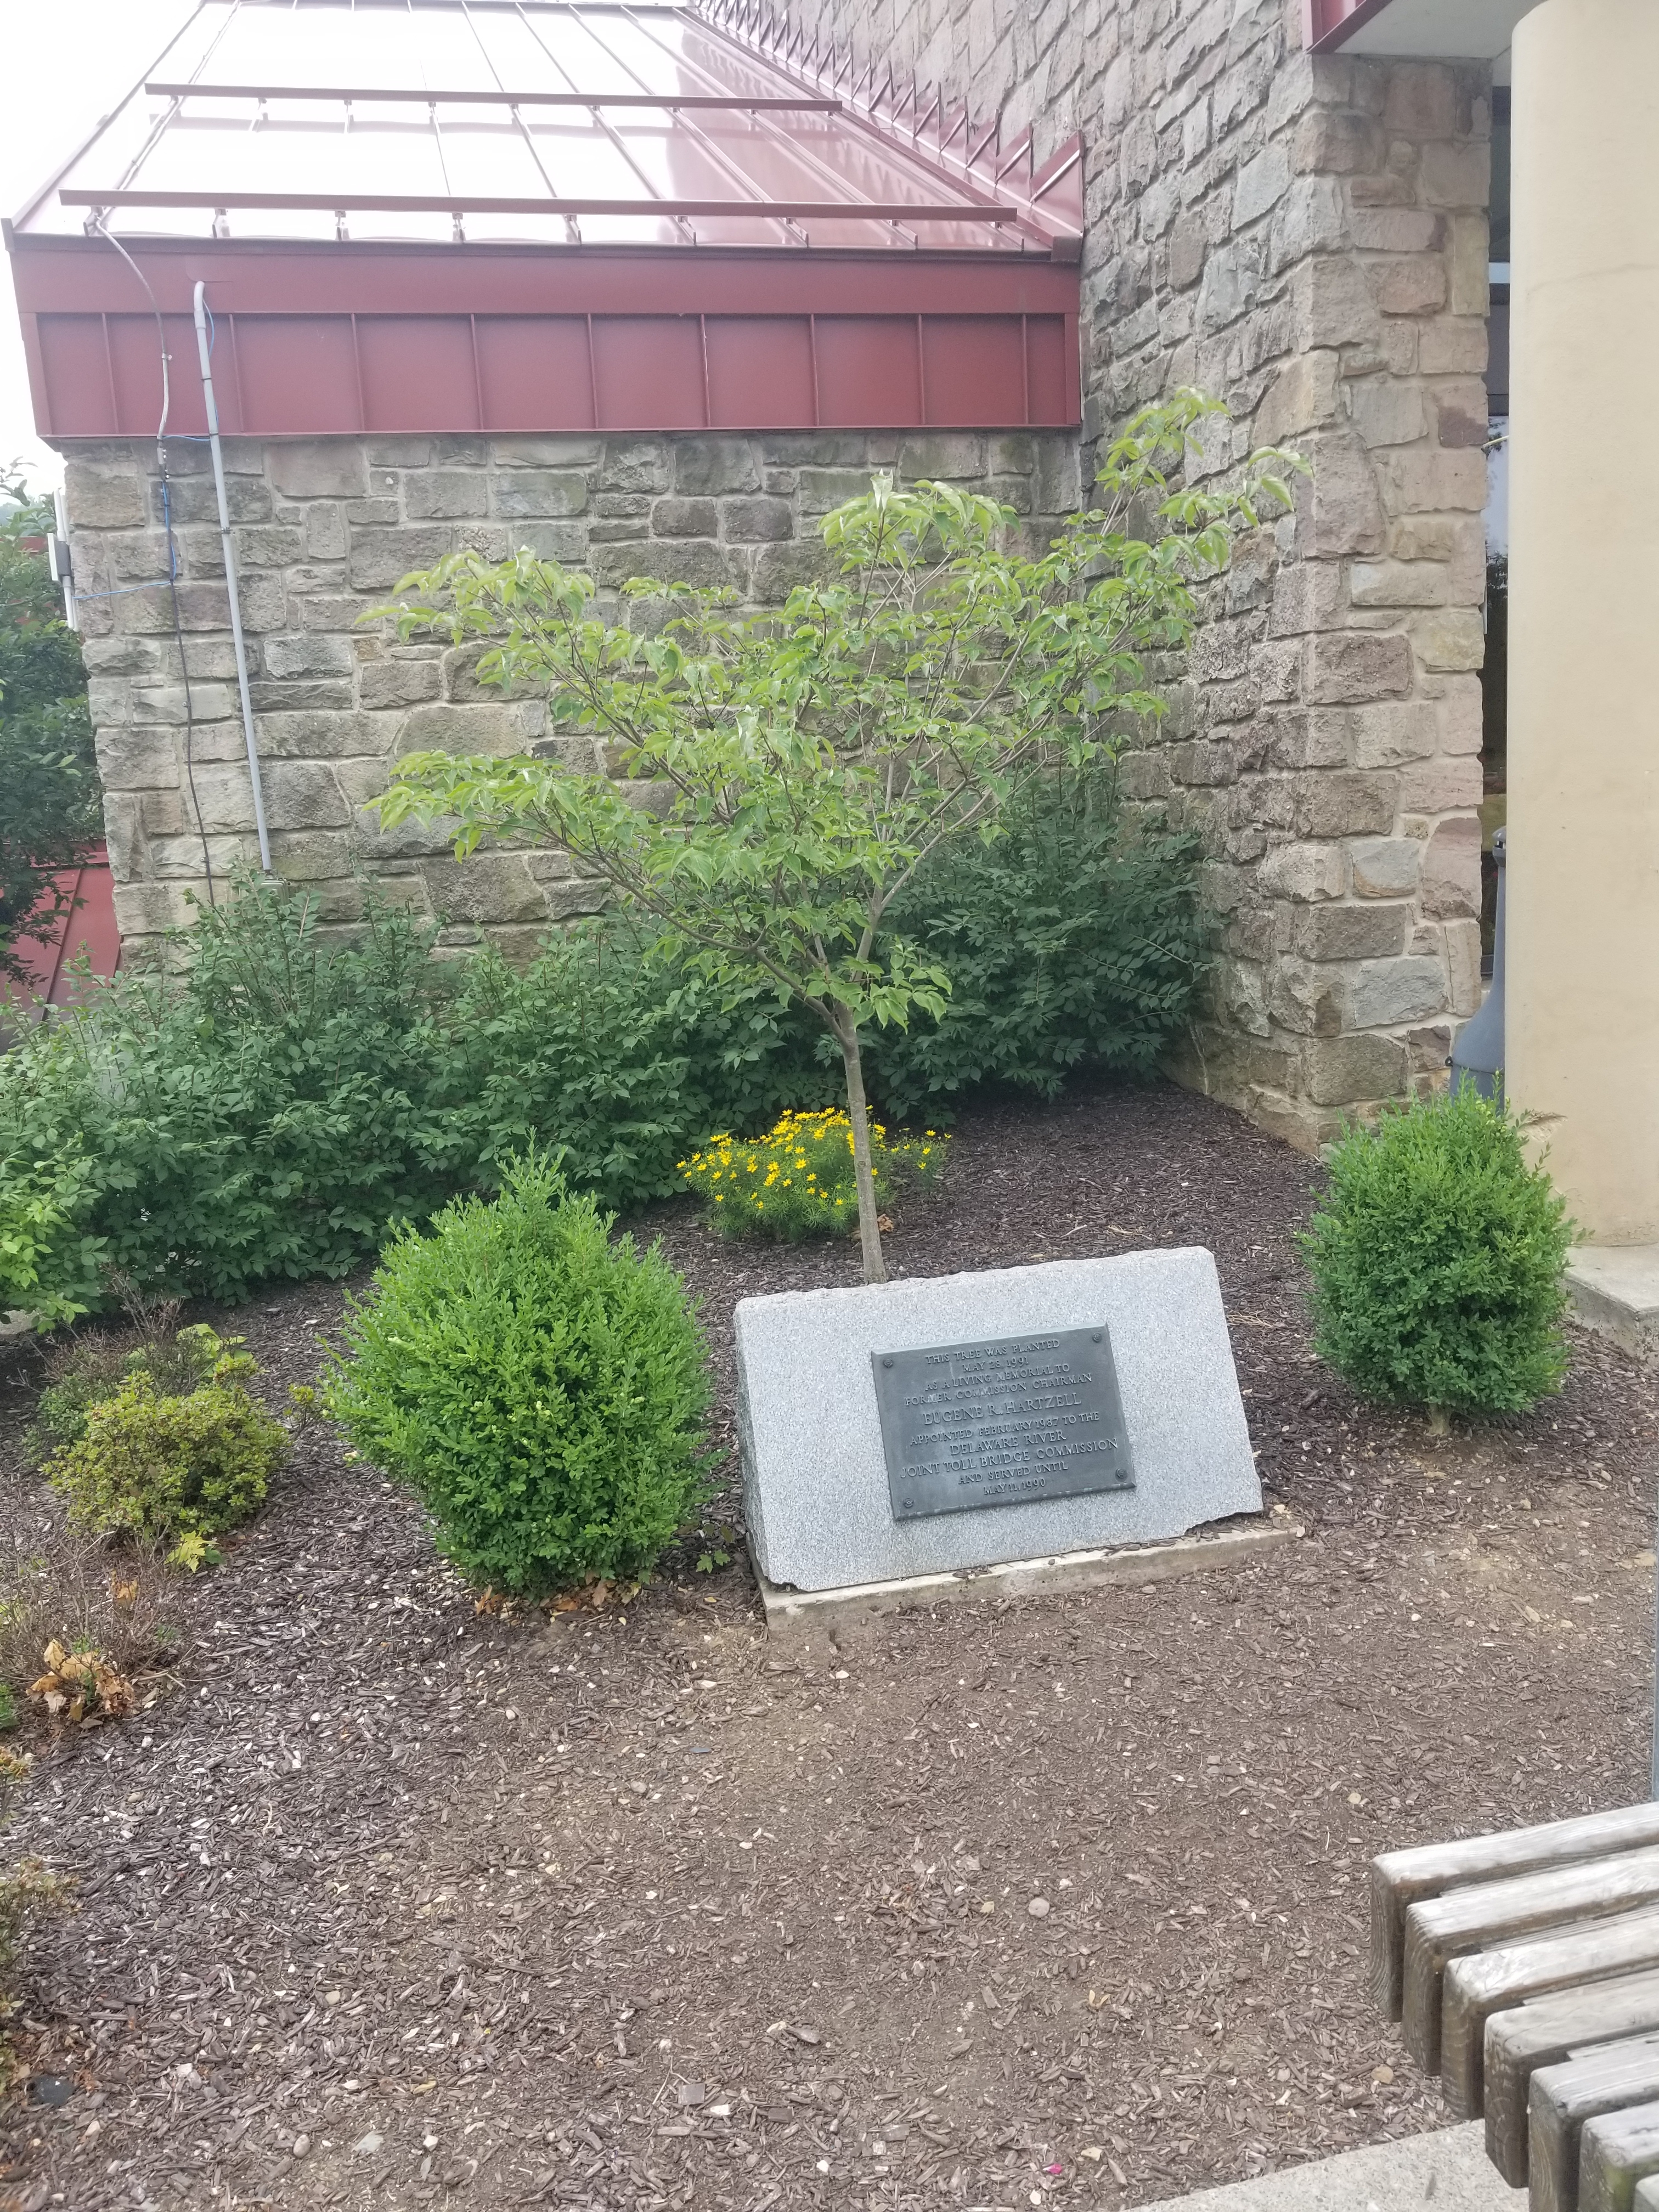 Eugene E. Hartzell Memorial Tree and Marker